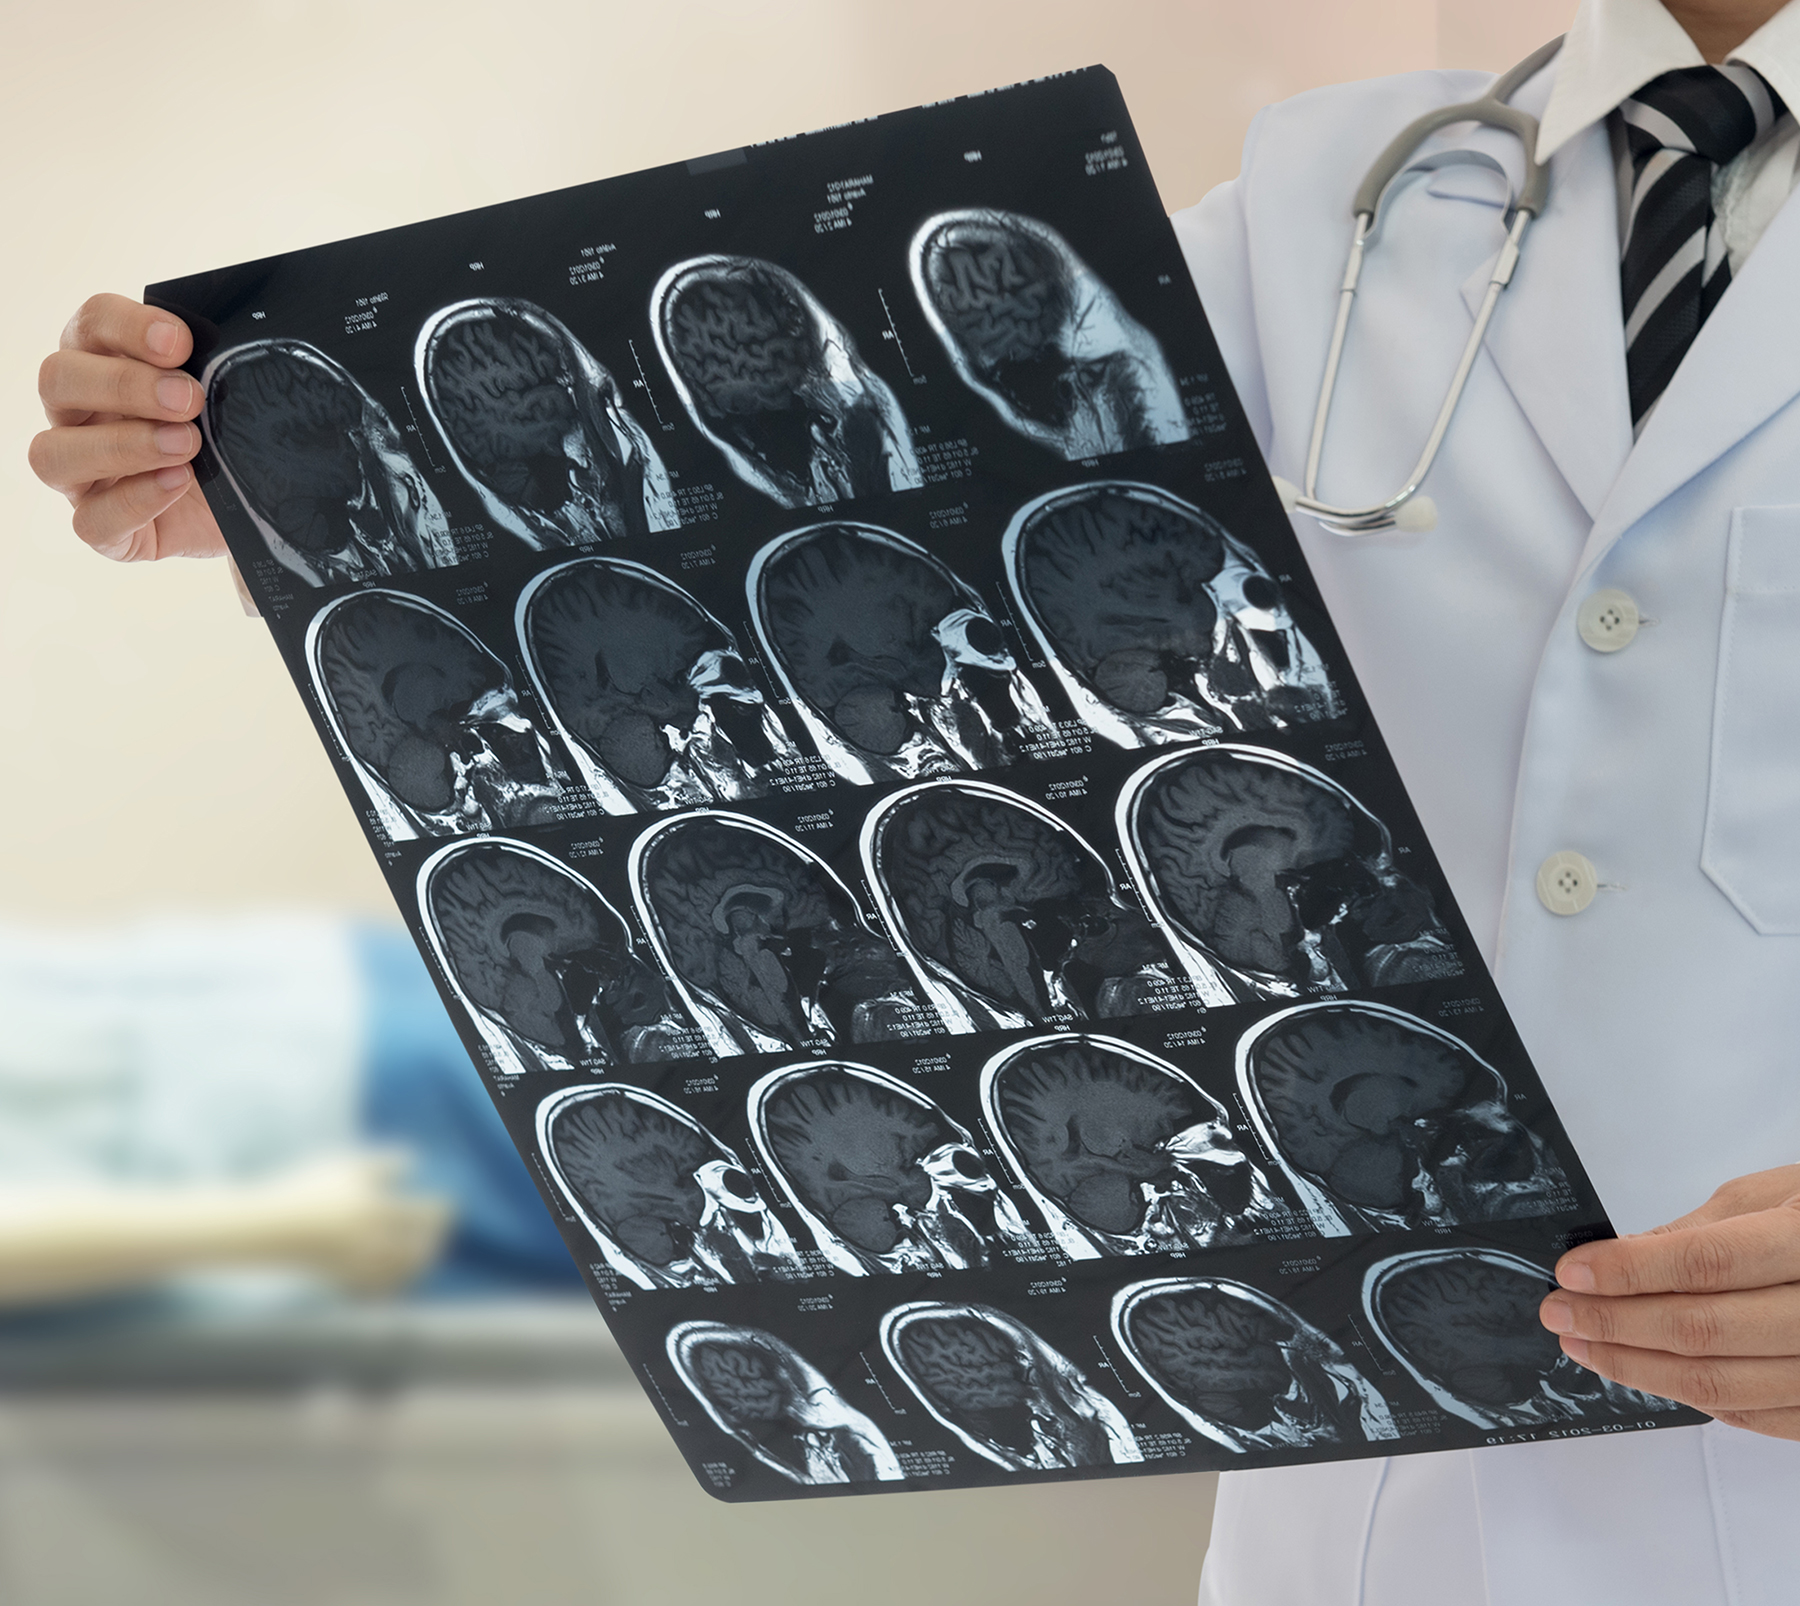 Neurologist in lab coat looking over the results of a patient's brain scan.